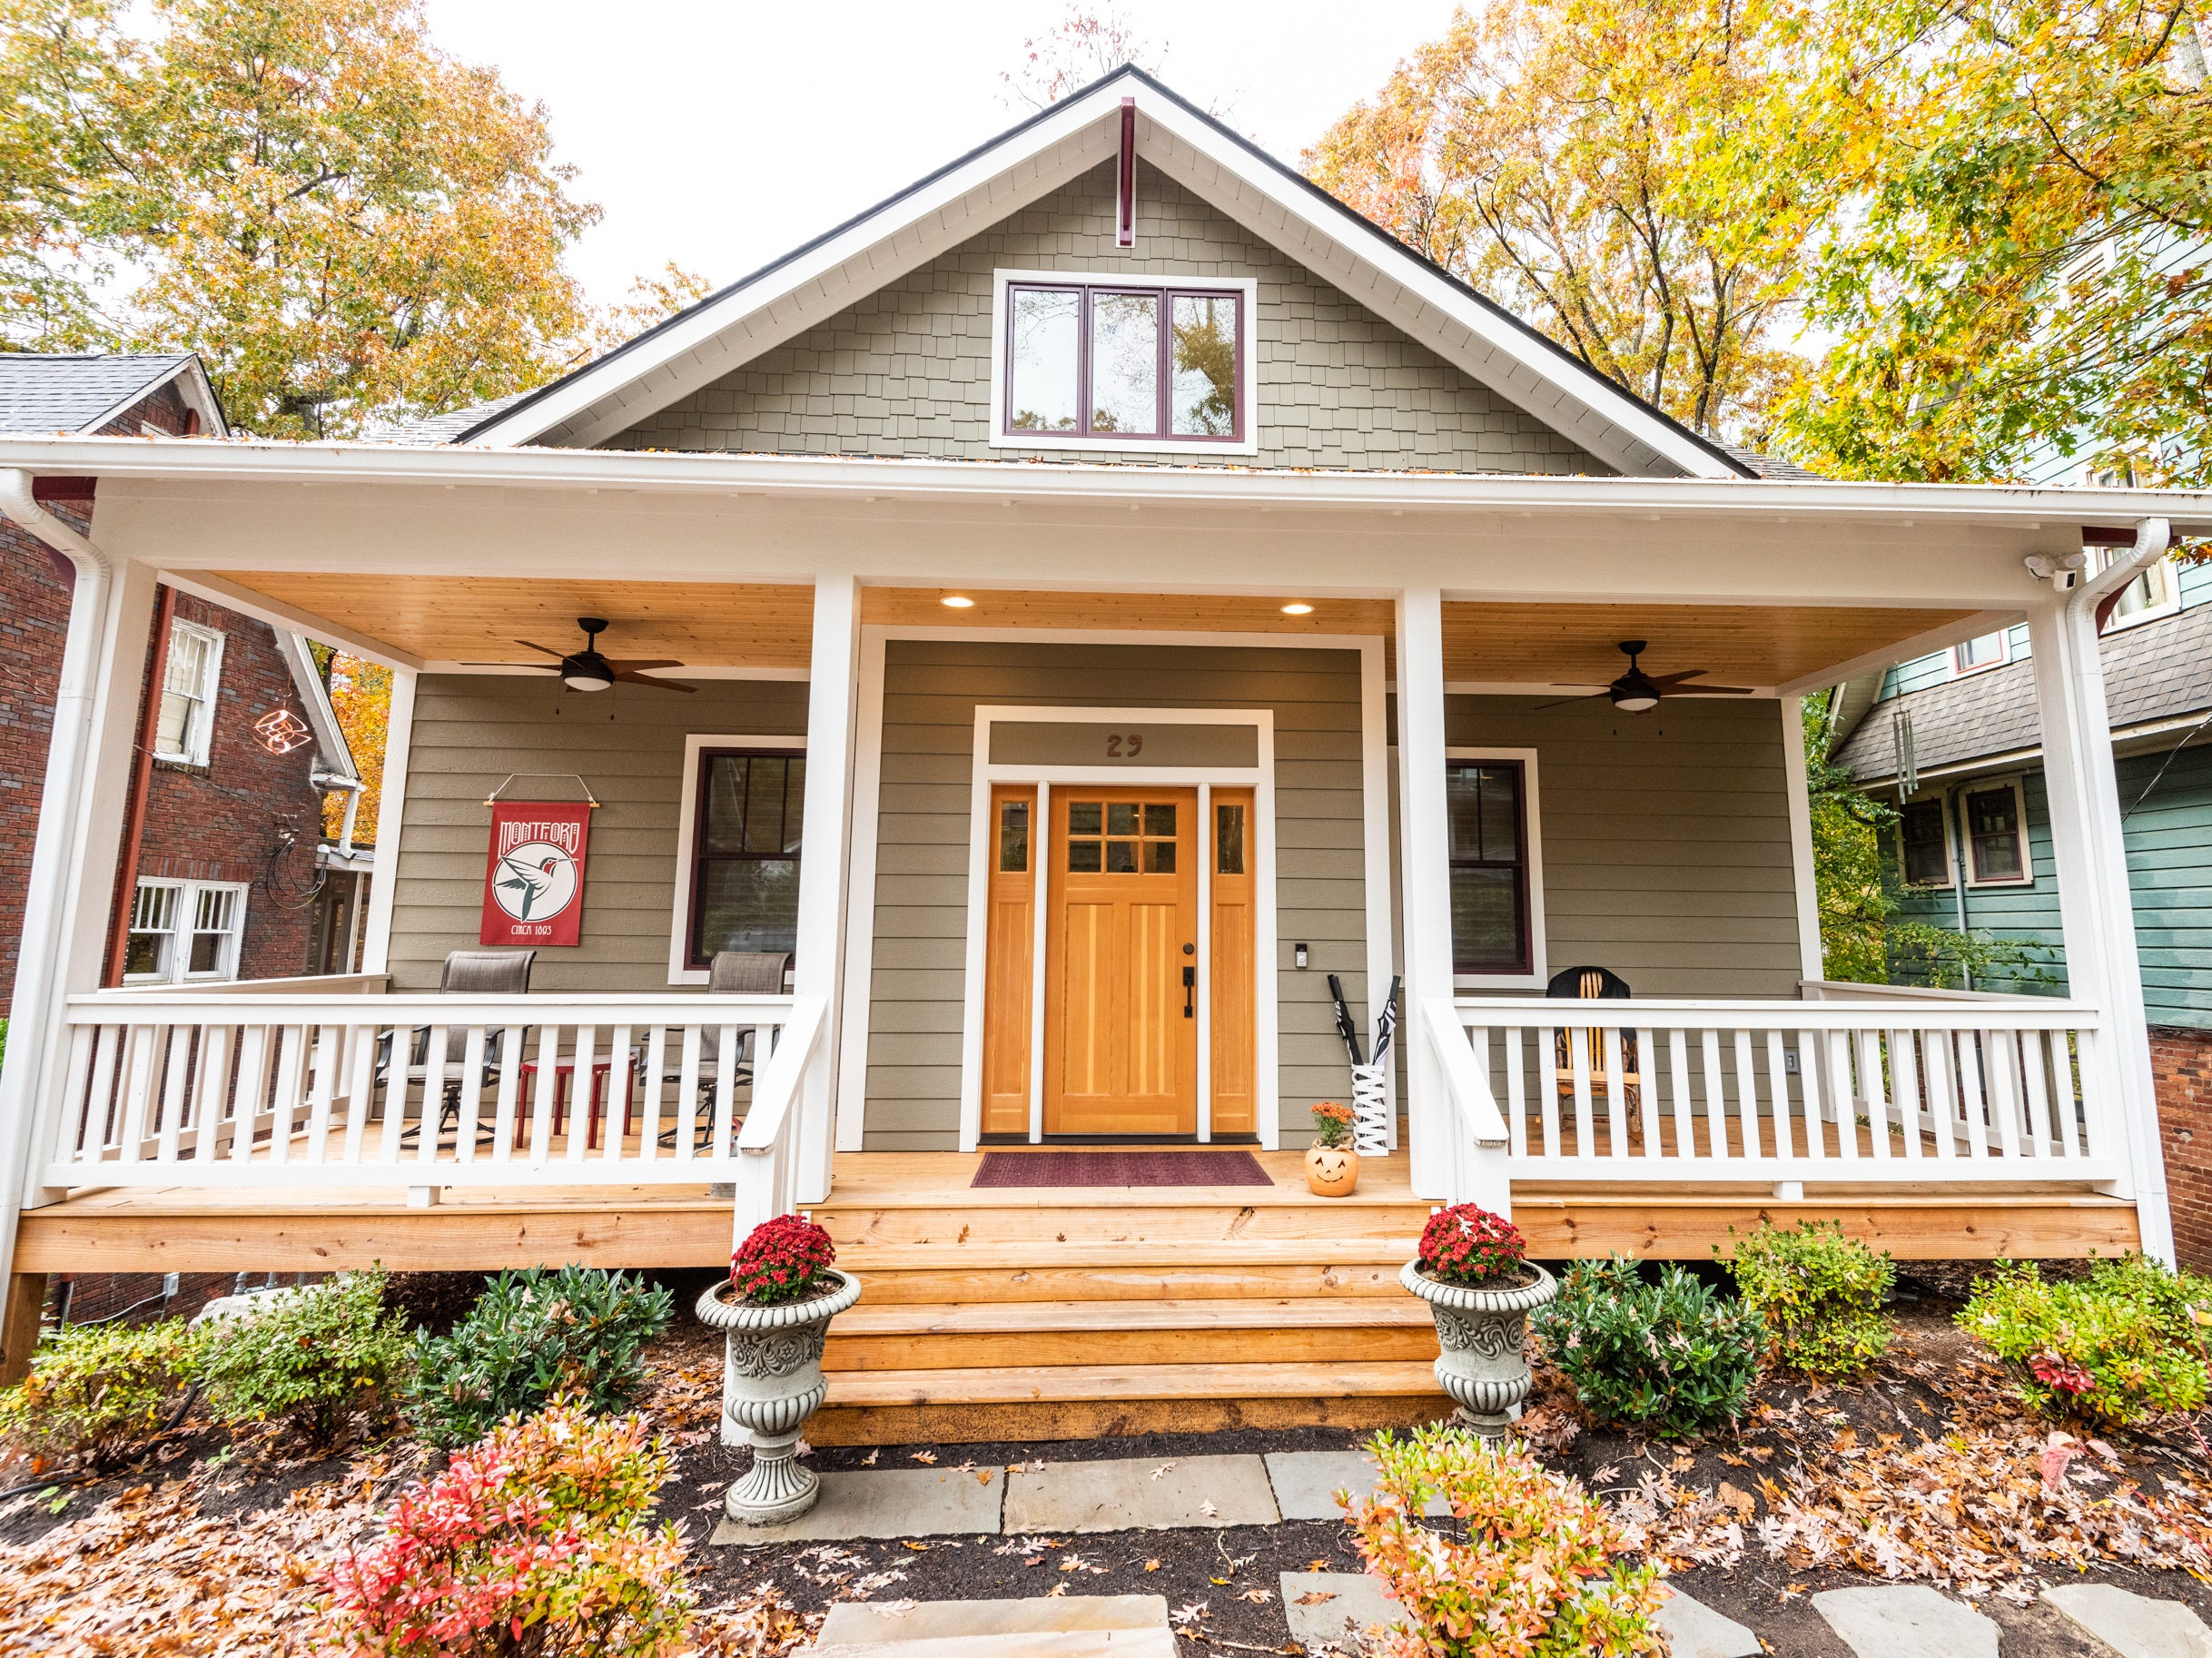 The home is new construction but incorporates Art & Crafts elements to feel at home in Montford.